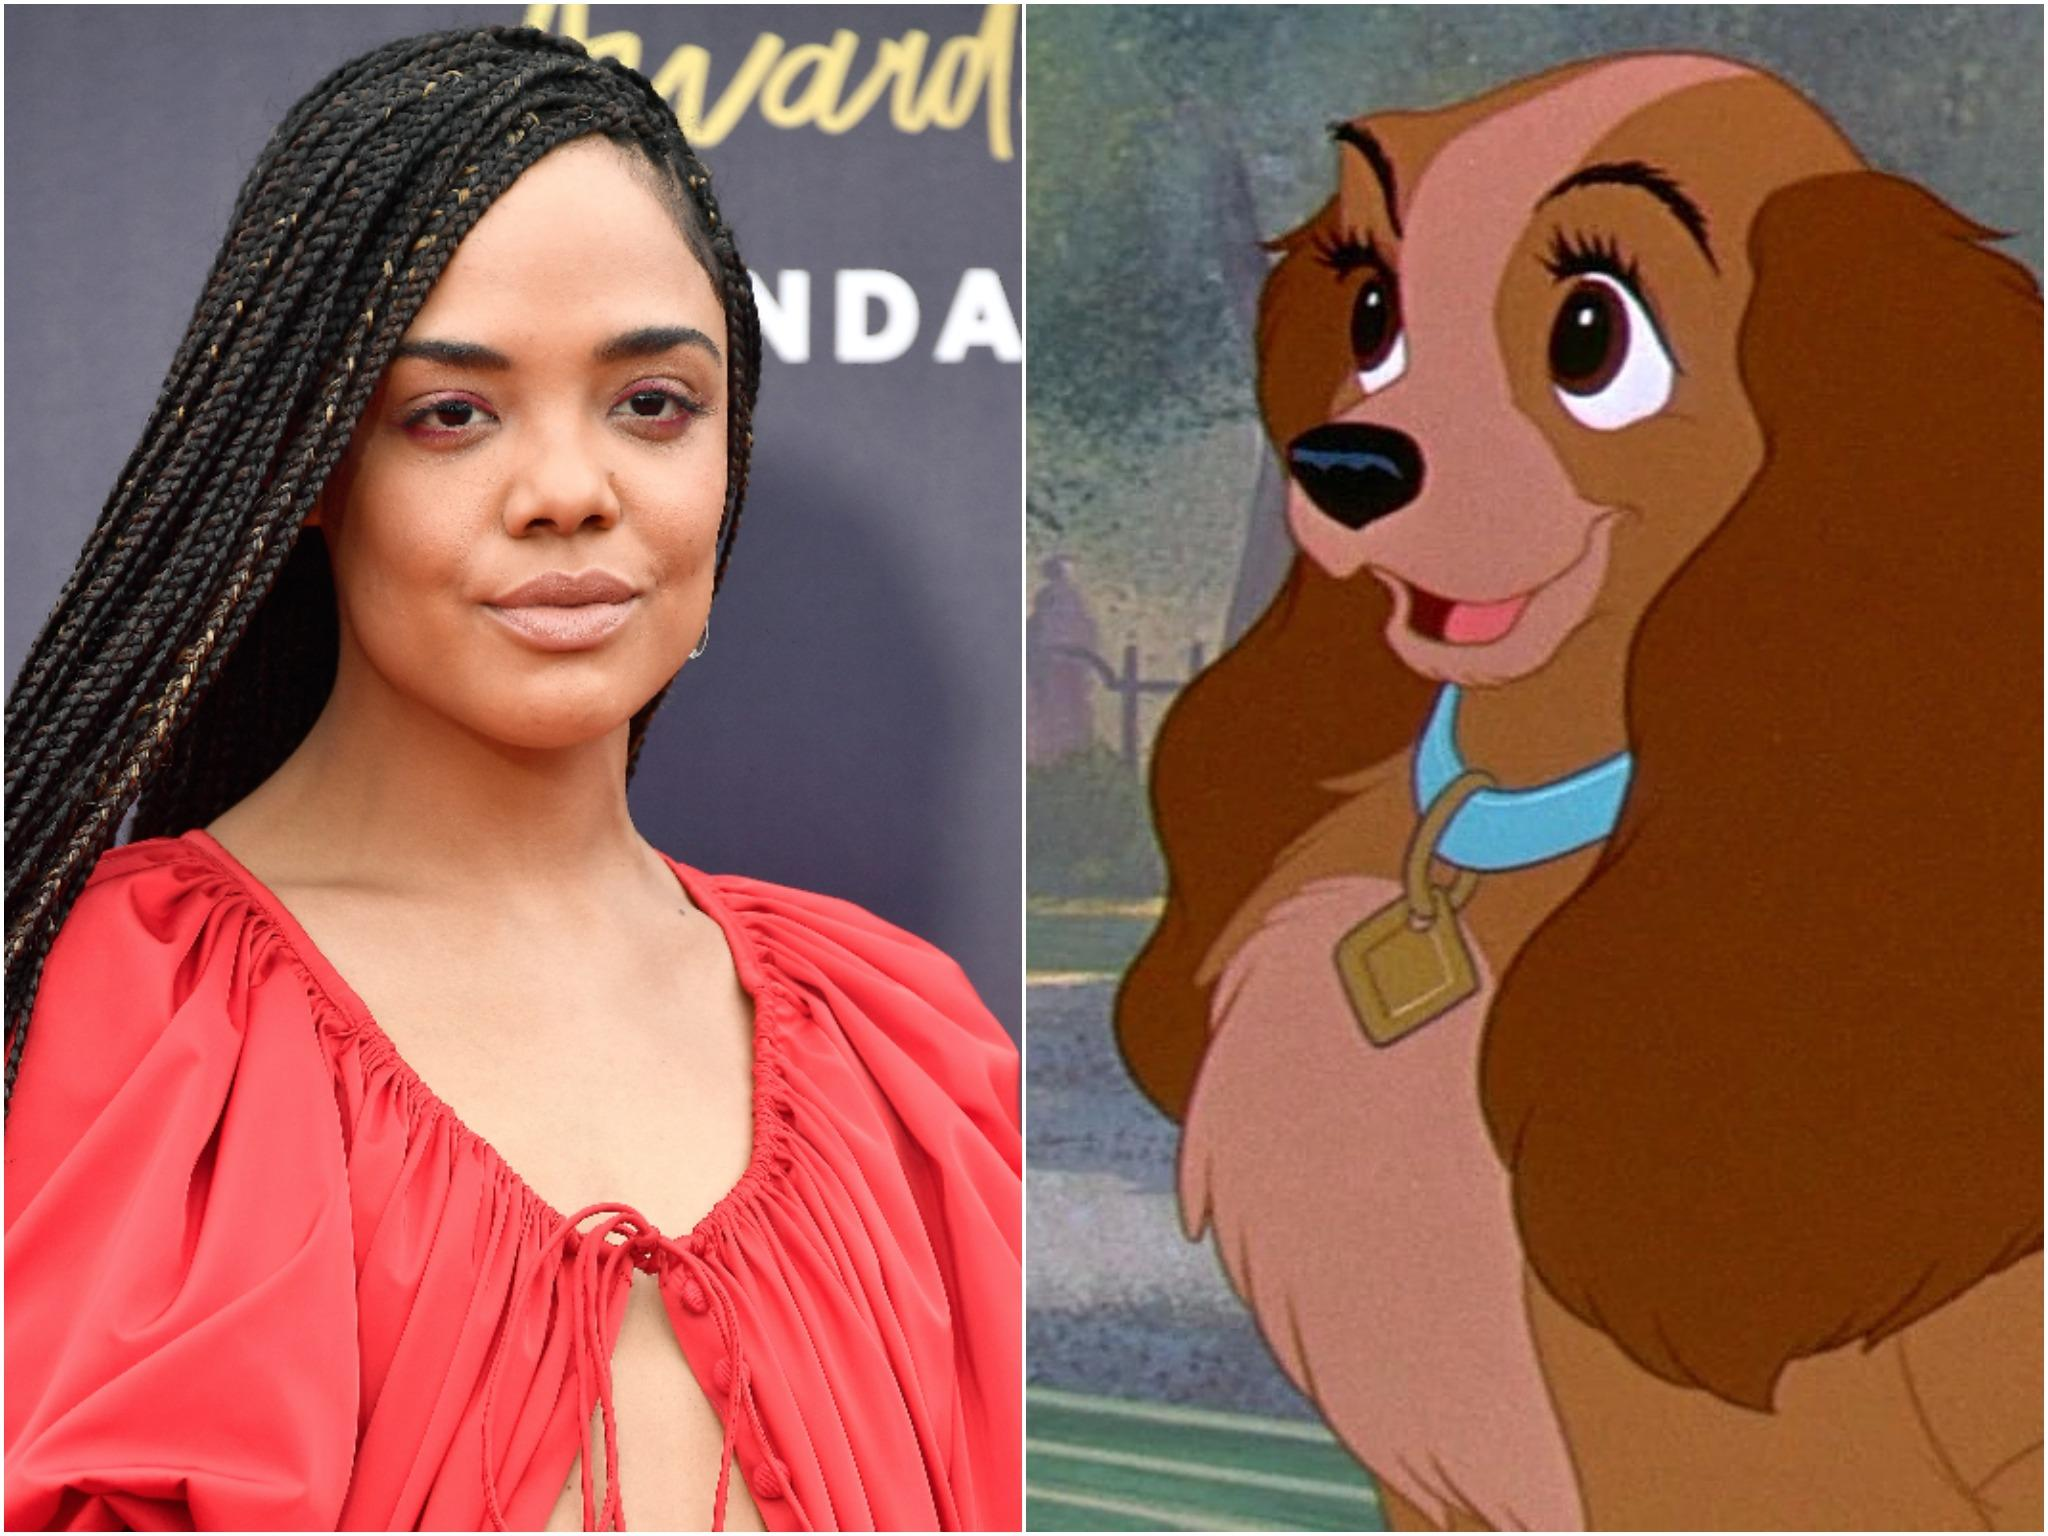 Lady And The Tramp Tessa Thompson To Voice Lady In Disney S Upcoming Live Action Remake The Independent The Independent